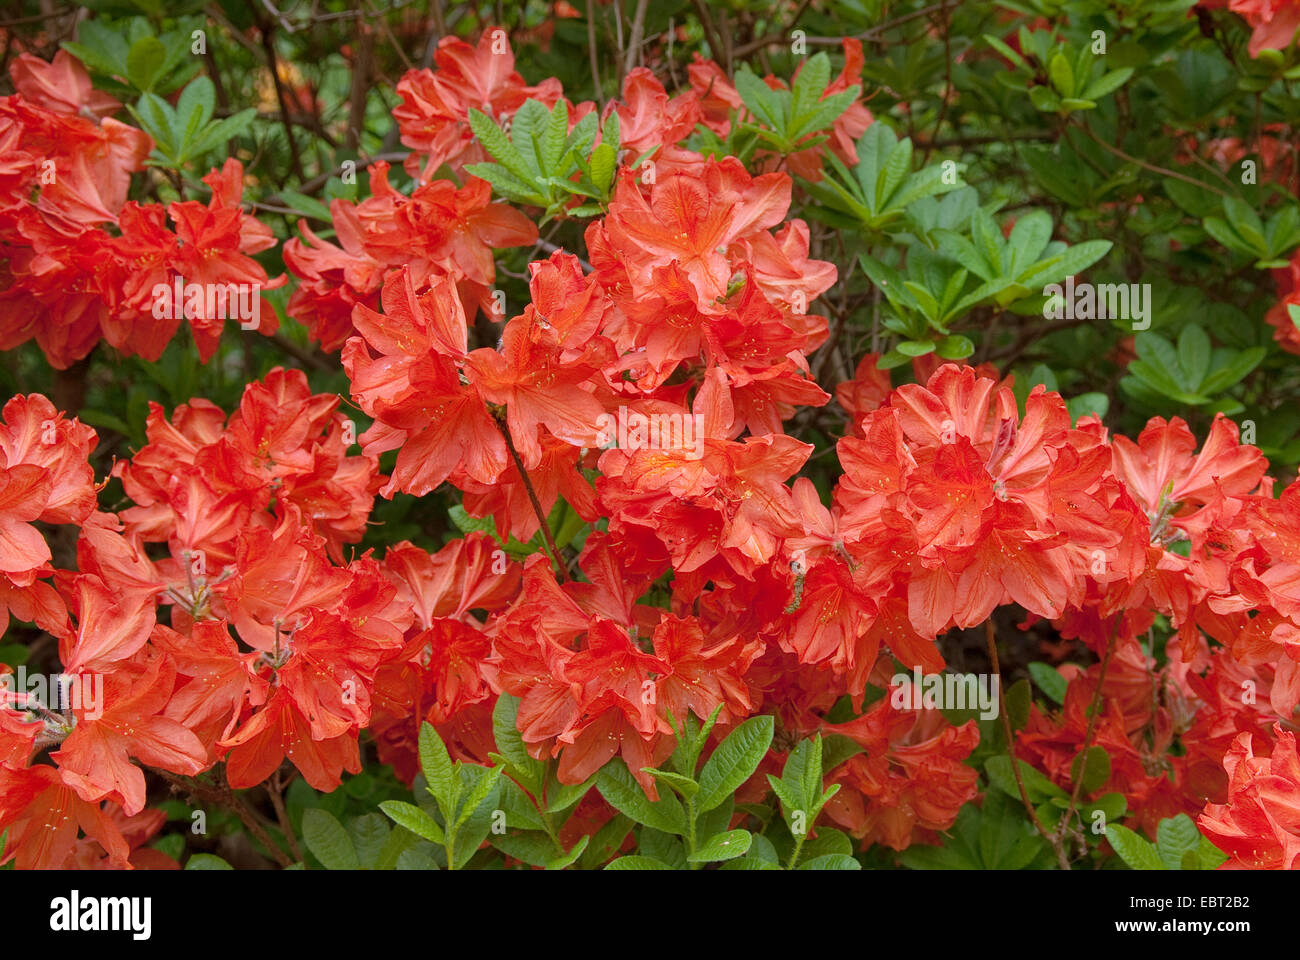 rhododendron (Rhododendron luteum 'Joseph Dietzgen', Rhododendron luteum Joseph Dietzgen), cultivar Joseph - Stock Image